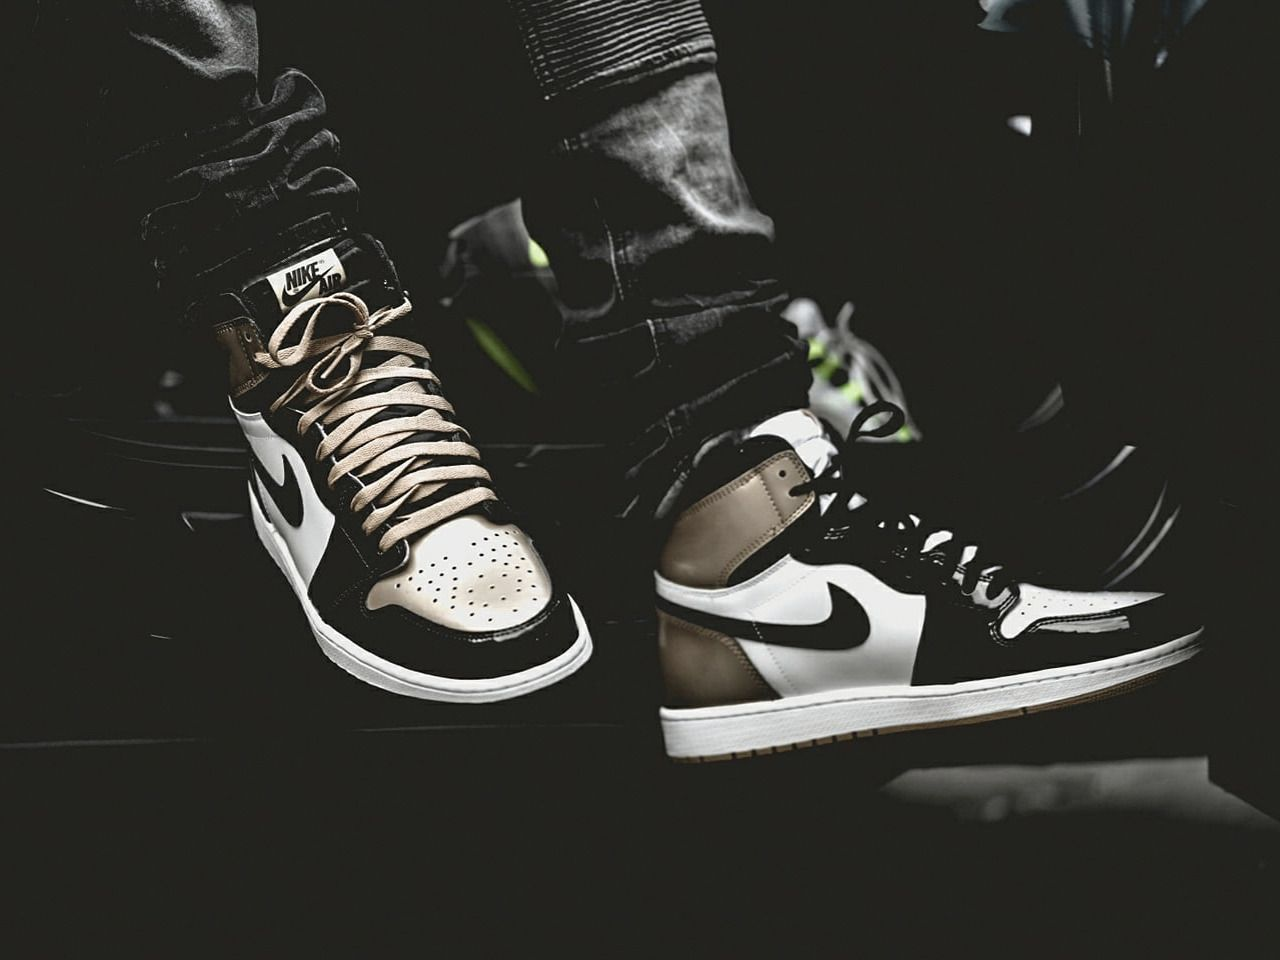 c9205f24d836 Nike Air Jordan 1 Retro High OG Gold Top 3 - 2017 (by Tresor Temuni ...